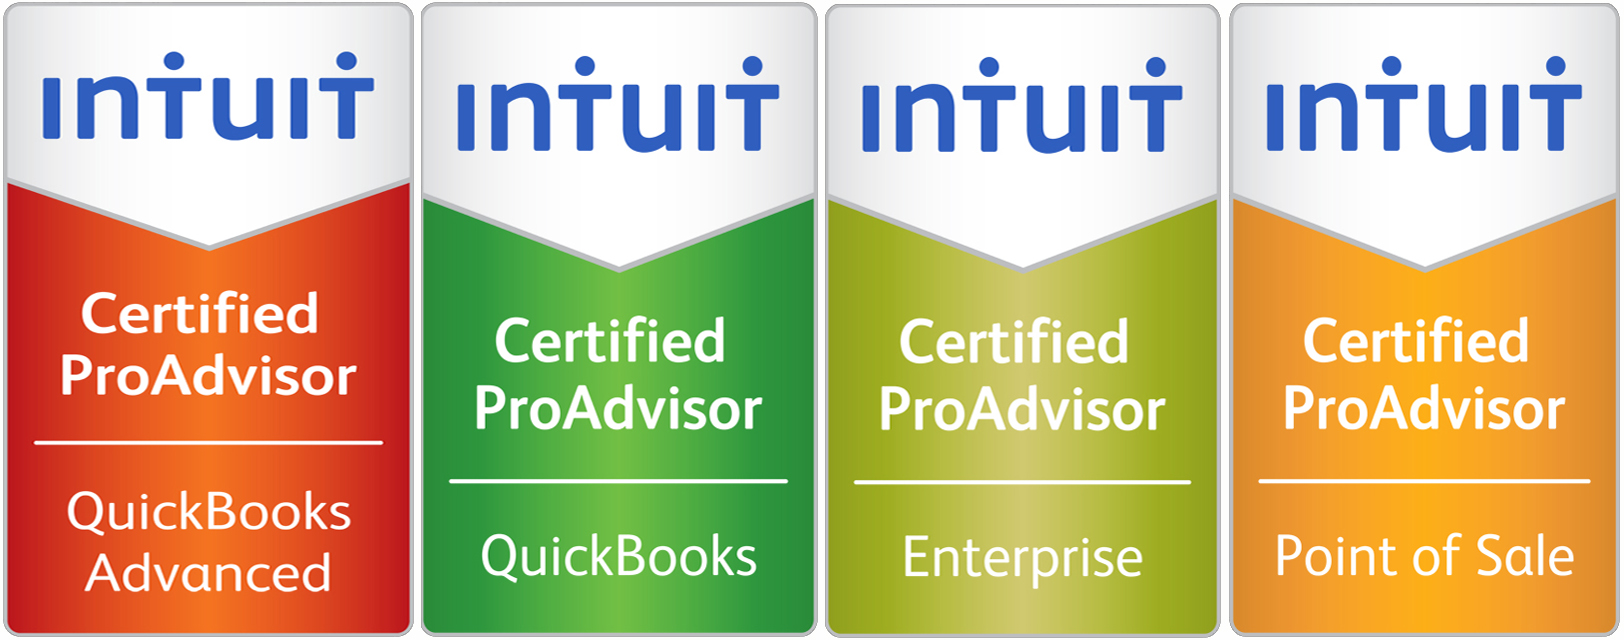 Intuit Certified Images